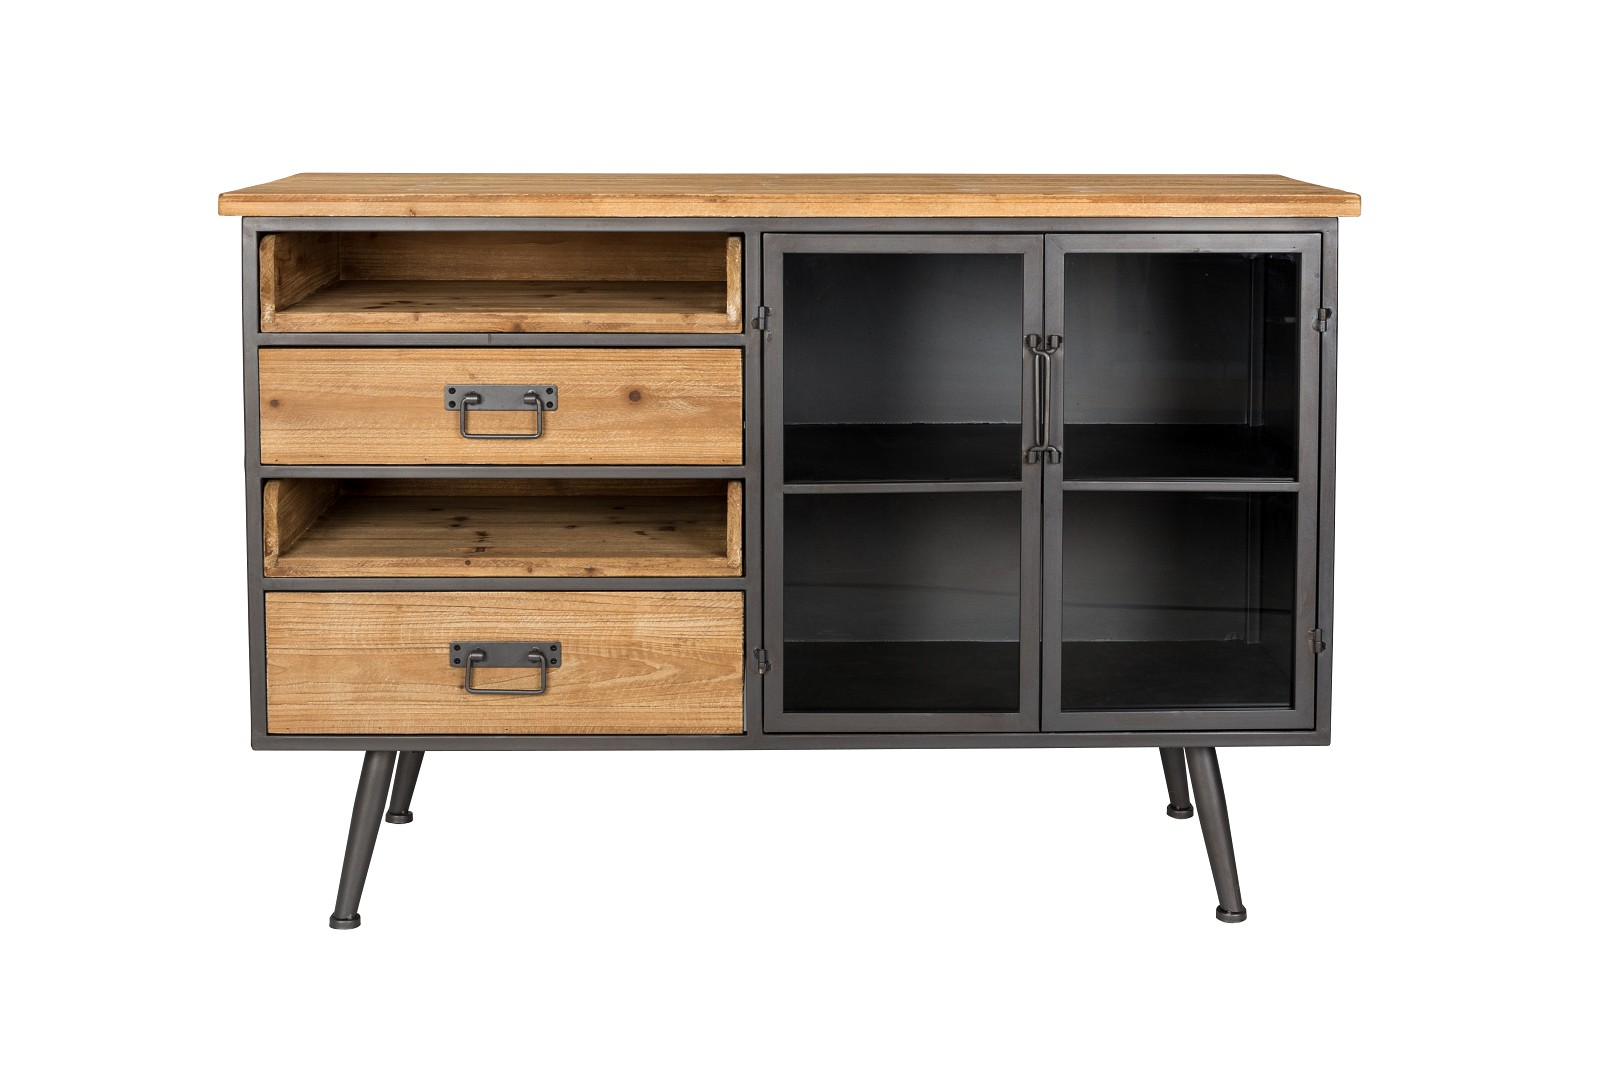 industrial sideboard vintage damian m bel wohnen sideboards freudenhaus designkaufhaus. Black Bedroom Furniture Sets. Home Design Ideas